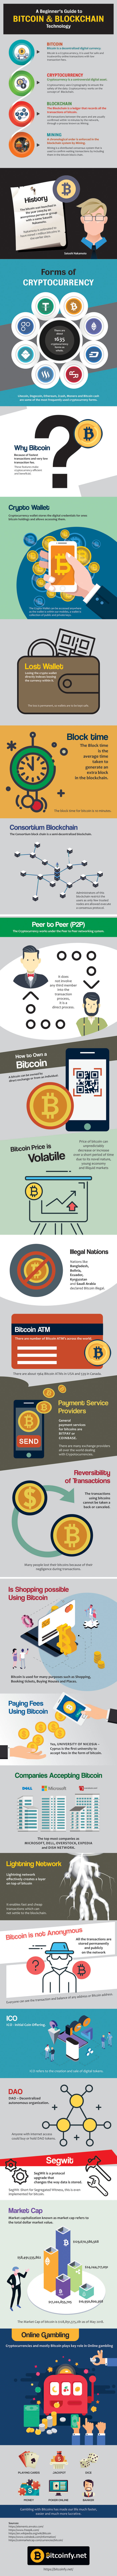 Bitcoin-Infographic final